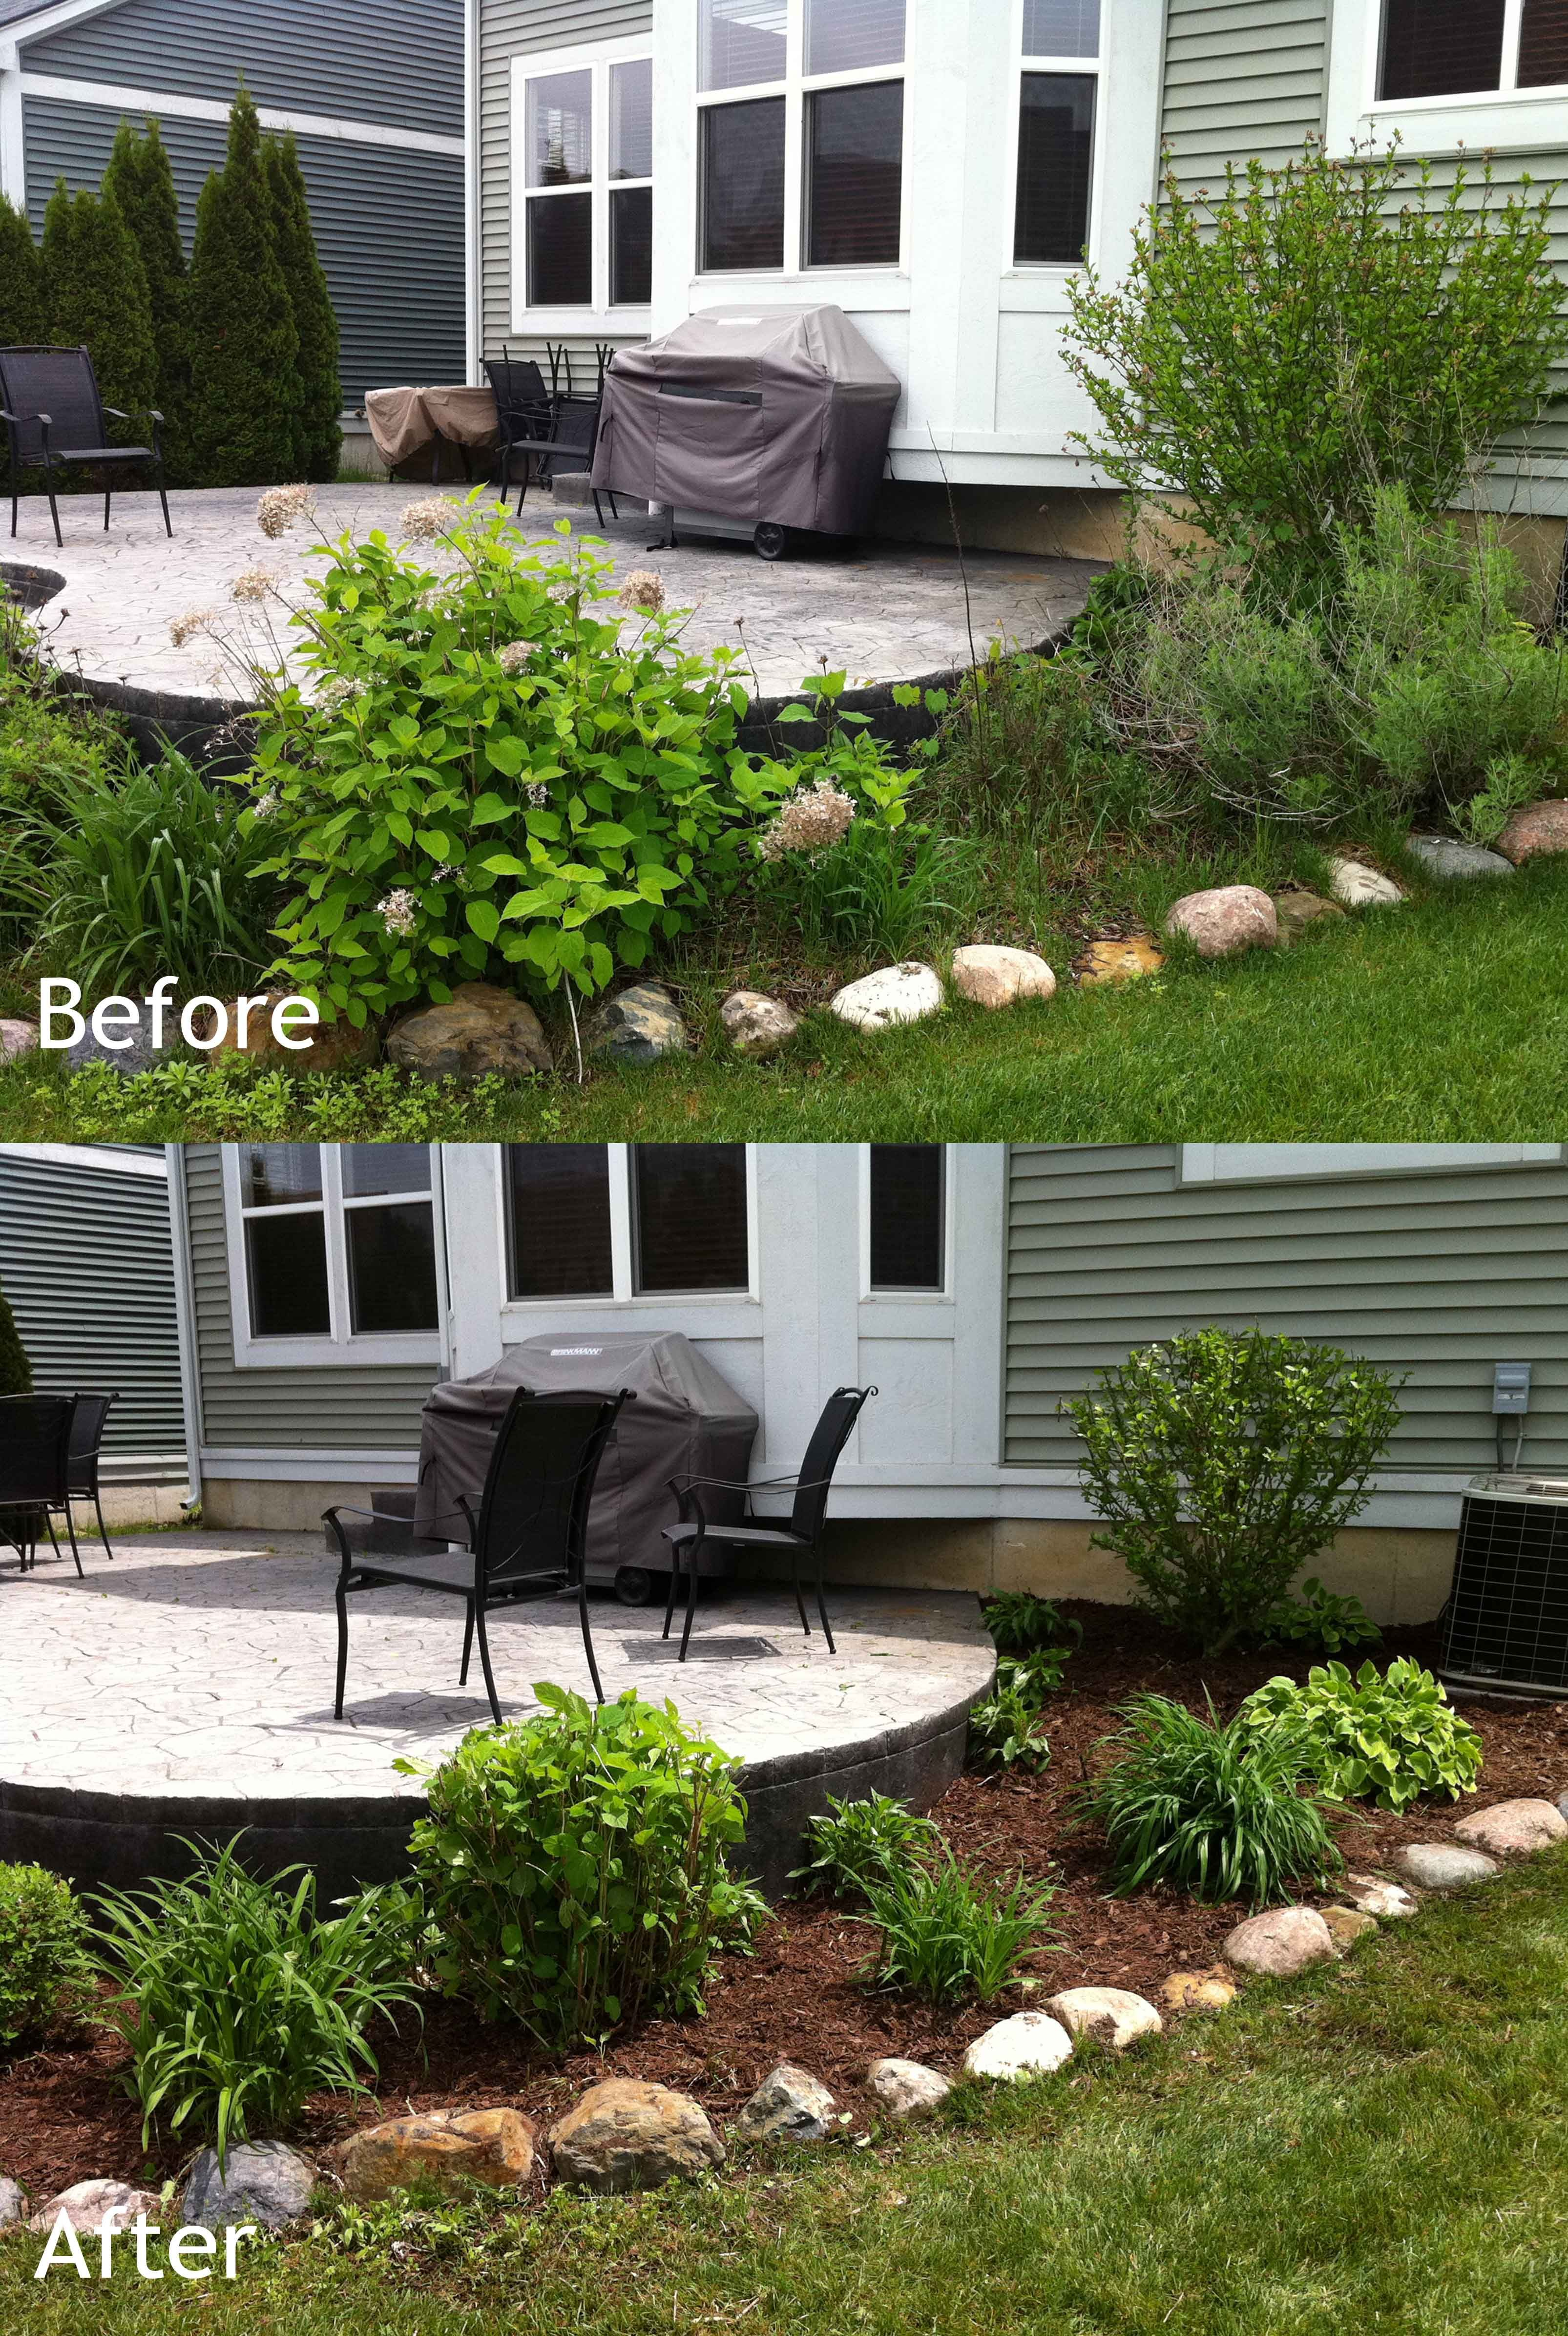 Affordable landscaping at wwwLandscapeSolutionsMIcom located in